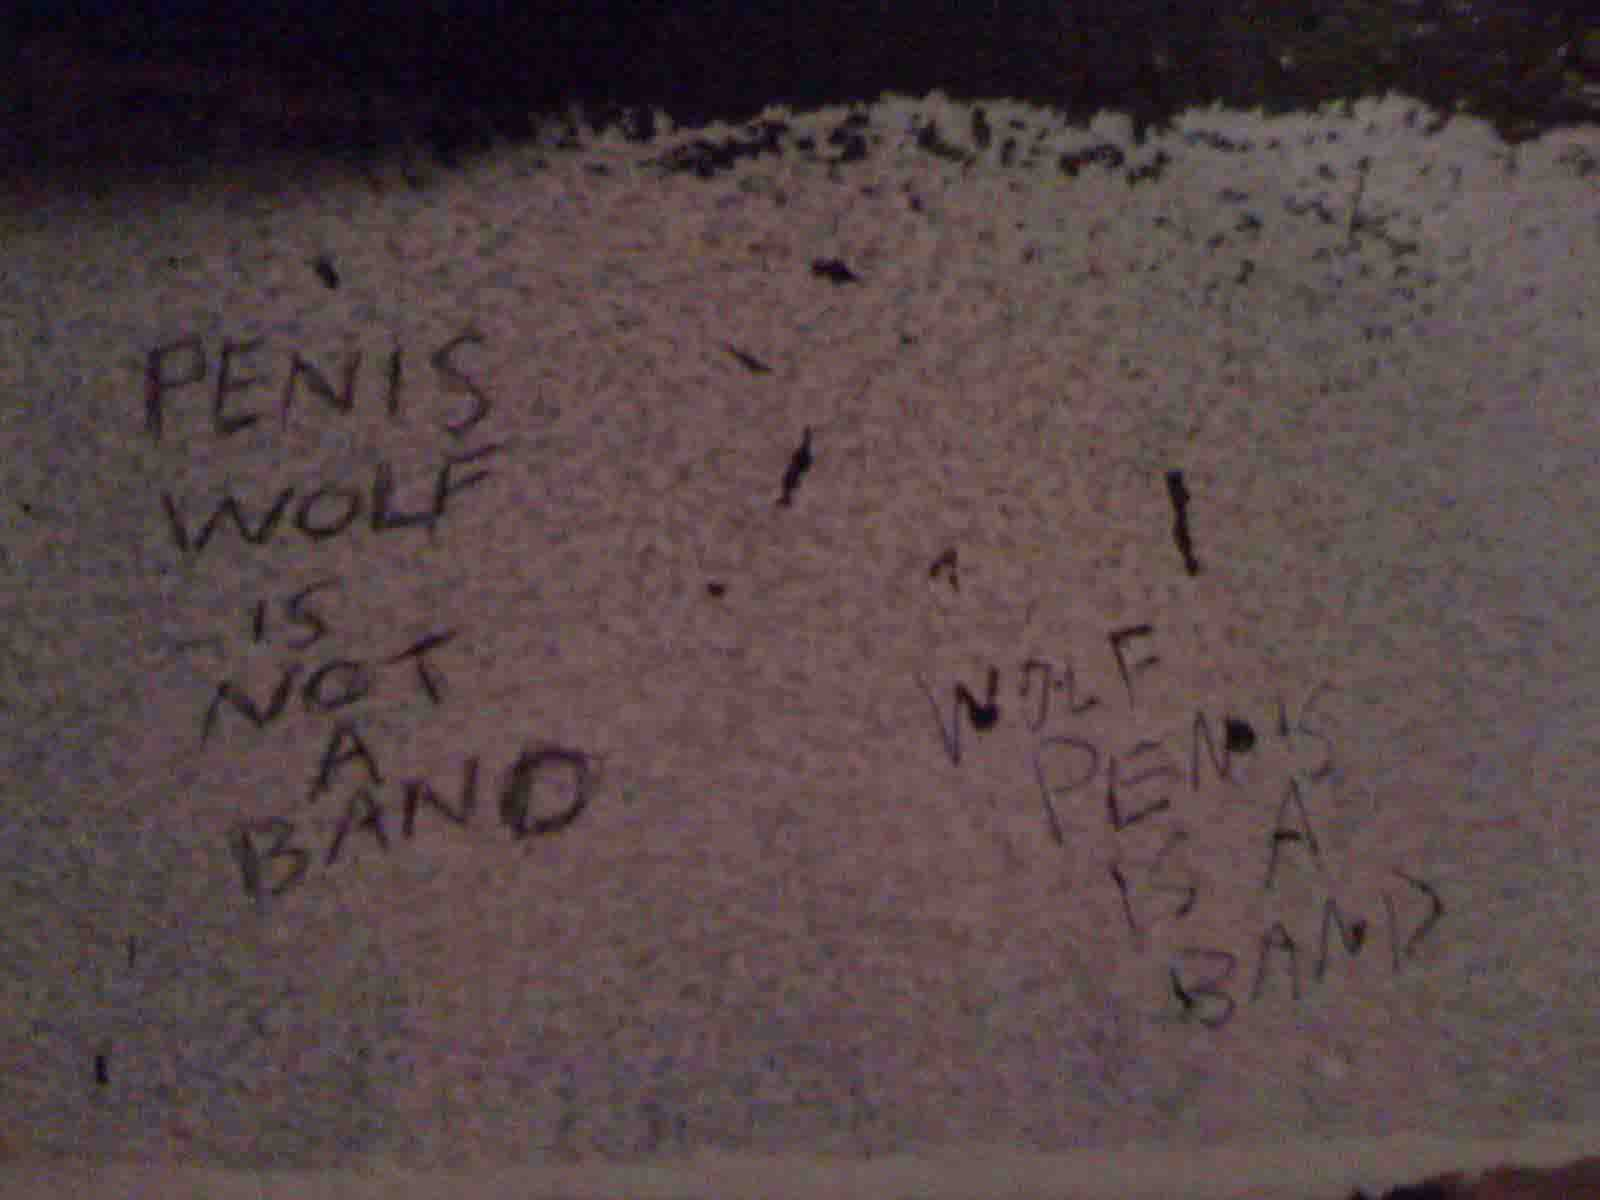 NYC - HiFi - A: Wolf Penis is a Band B: Penis Wolf is Not a Band